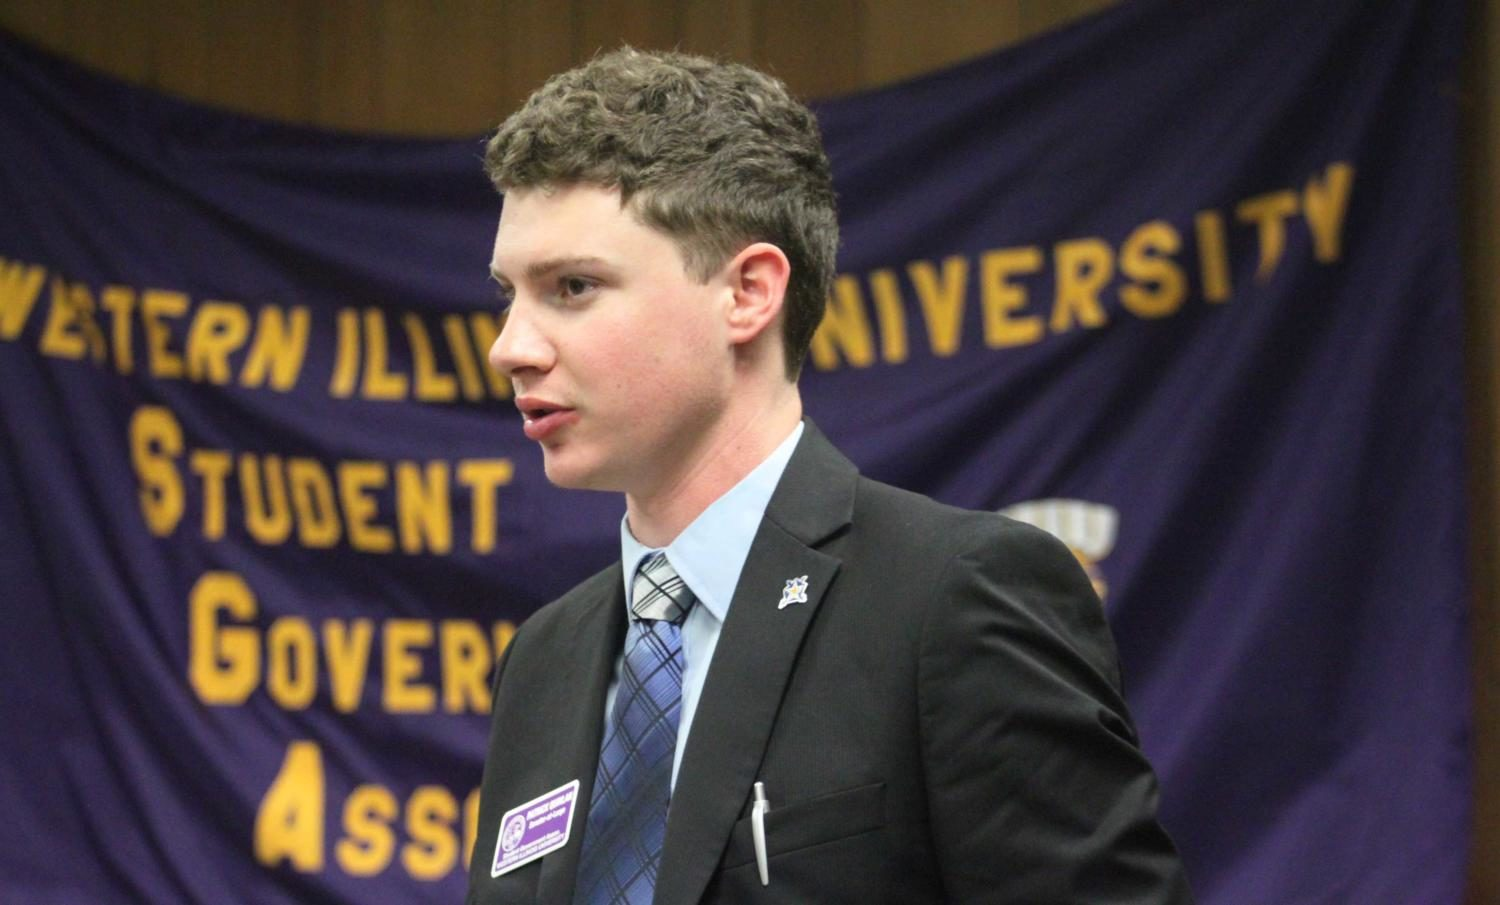 Student+Government+Association+%28SGA%29+Senator+at-Large+Patrick+Quinlan+motions+for+SGA+to+move+into+an+executive+session+to+discuss+Jason+Wood%E2%80%99s+nomination+as+SGA+faculty+adviser+with+the+purpose+of+allowing+senators+to+speak+free+from+outside+influence.